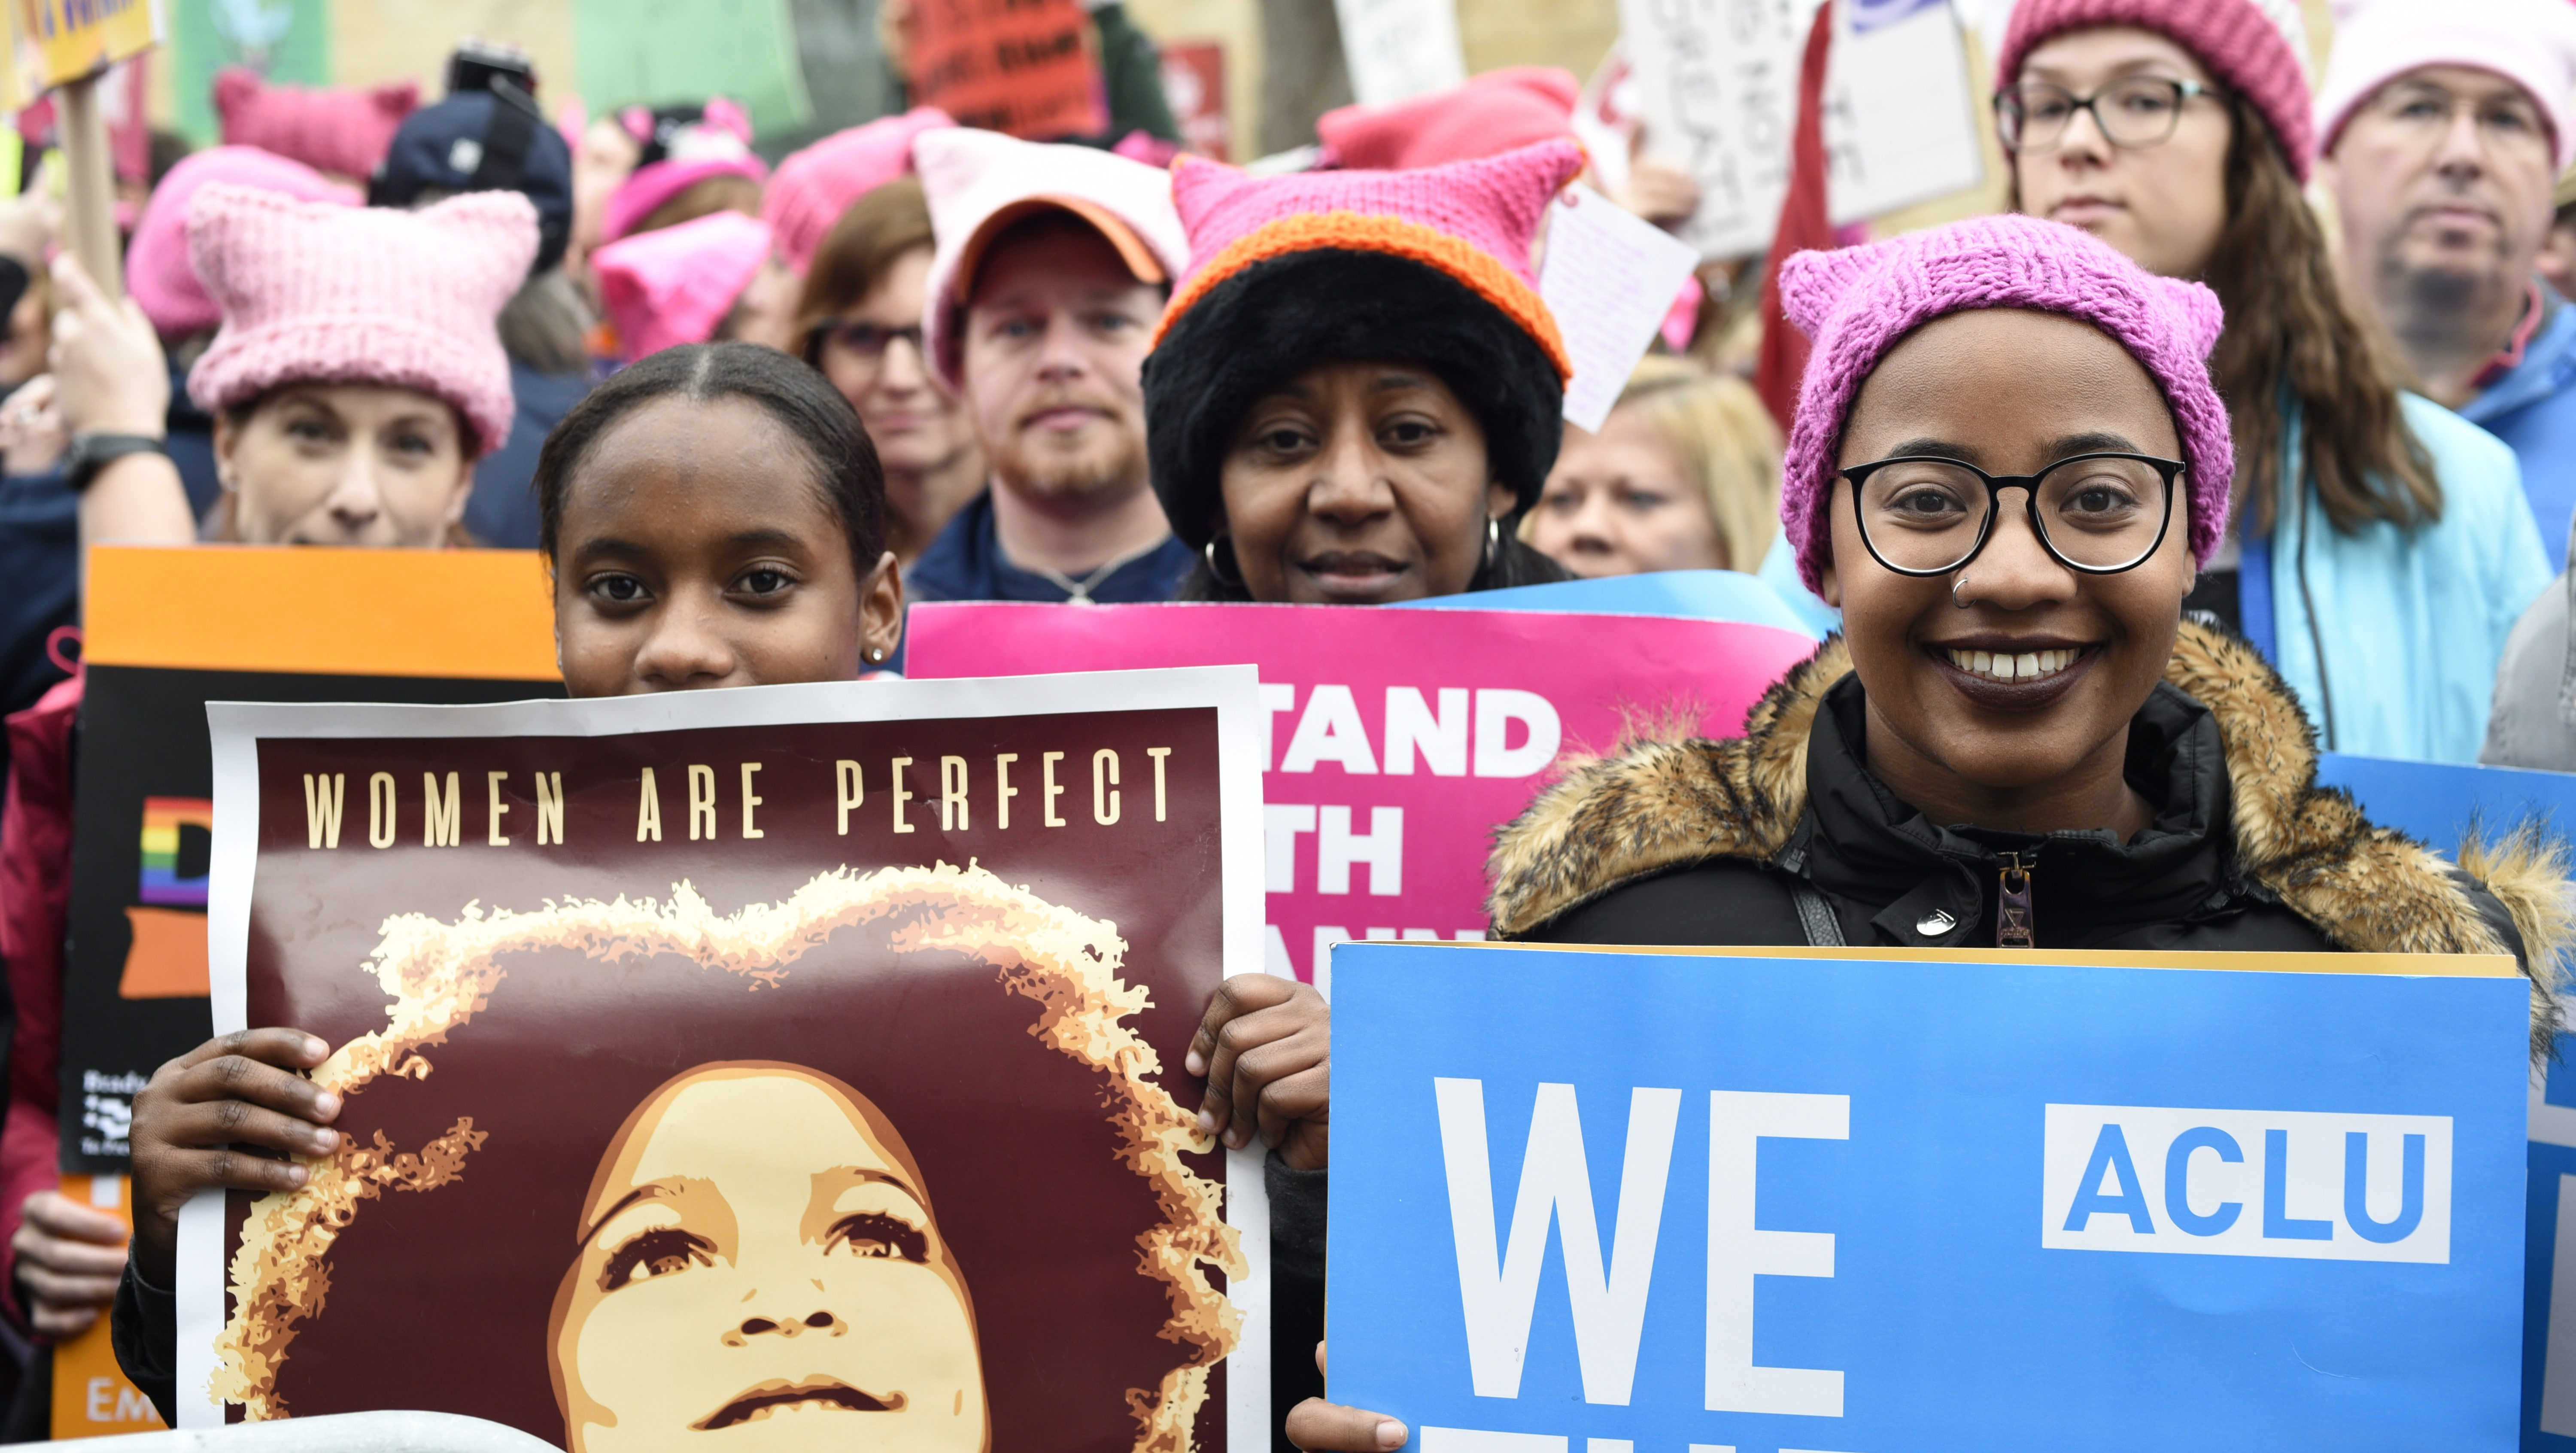 Participants attend the Women's March on Washington on Independence Ave. on Saturday, Jan. 21, 2017 in Washington, on the first full day of Donald Trump's presidency.  Thousands are massing on the National Mall for the Women's March, and they're gathering, too, in spots around the world.  (AP Photo/Sait Serkan Gurbuz)